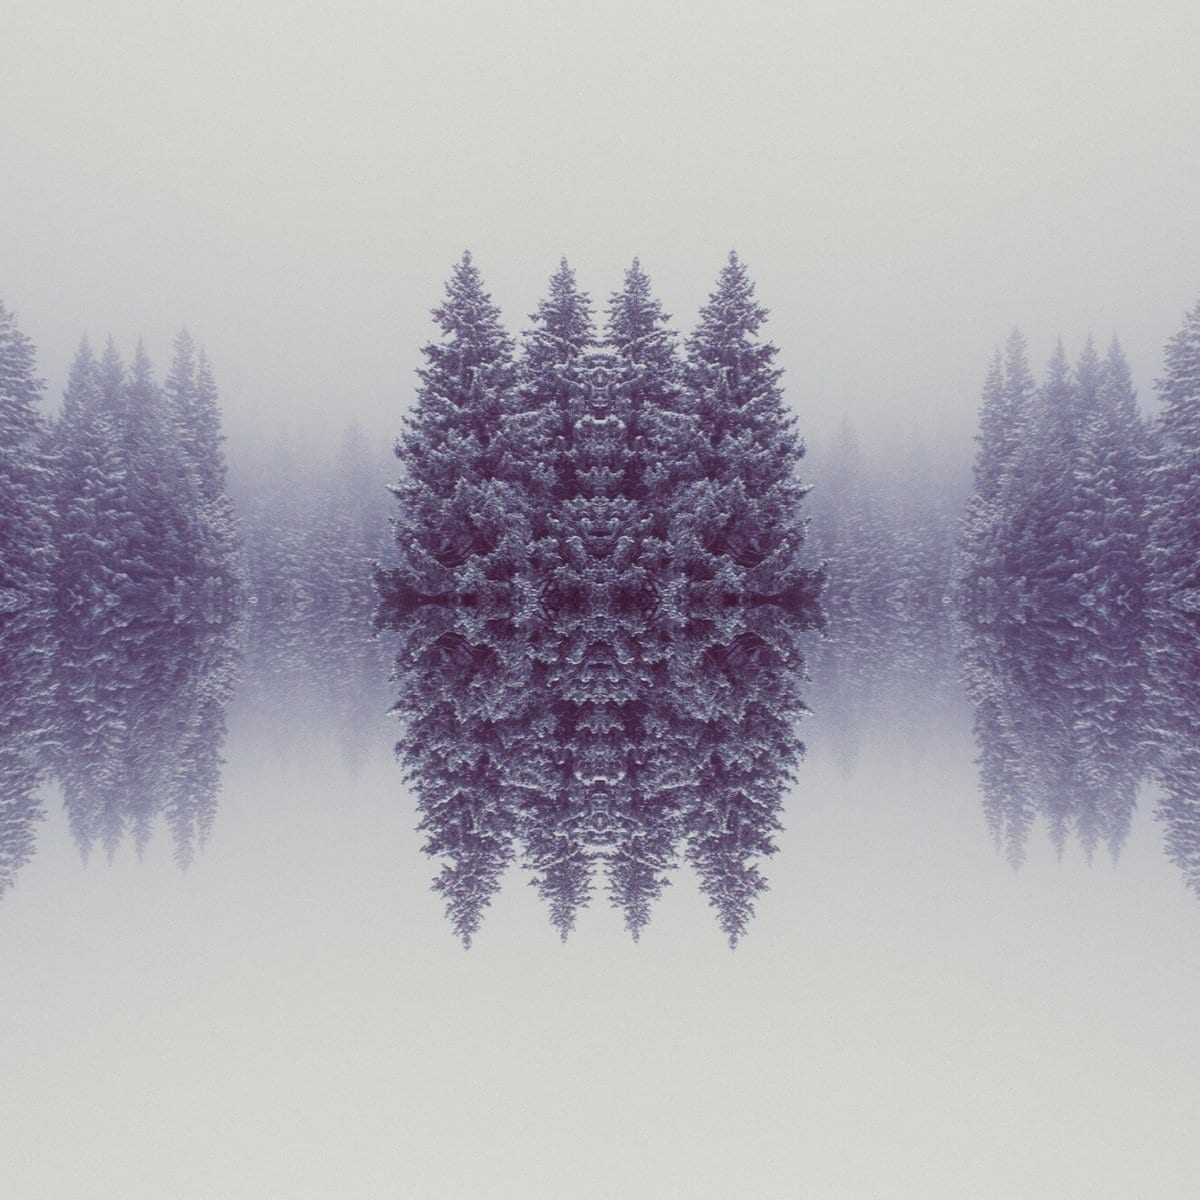 DigitalAnthill_Mirrored00009